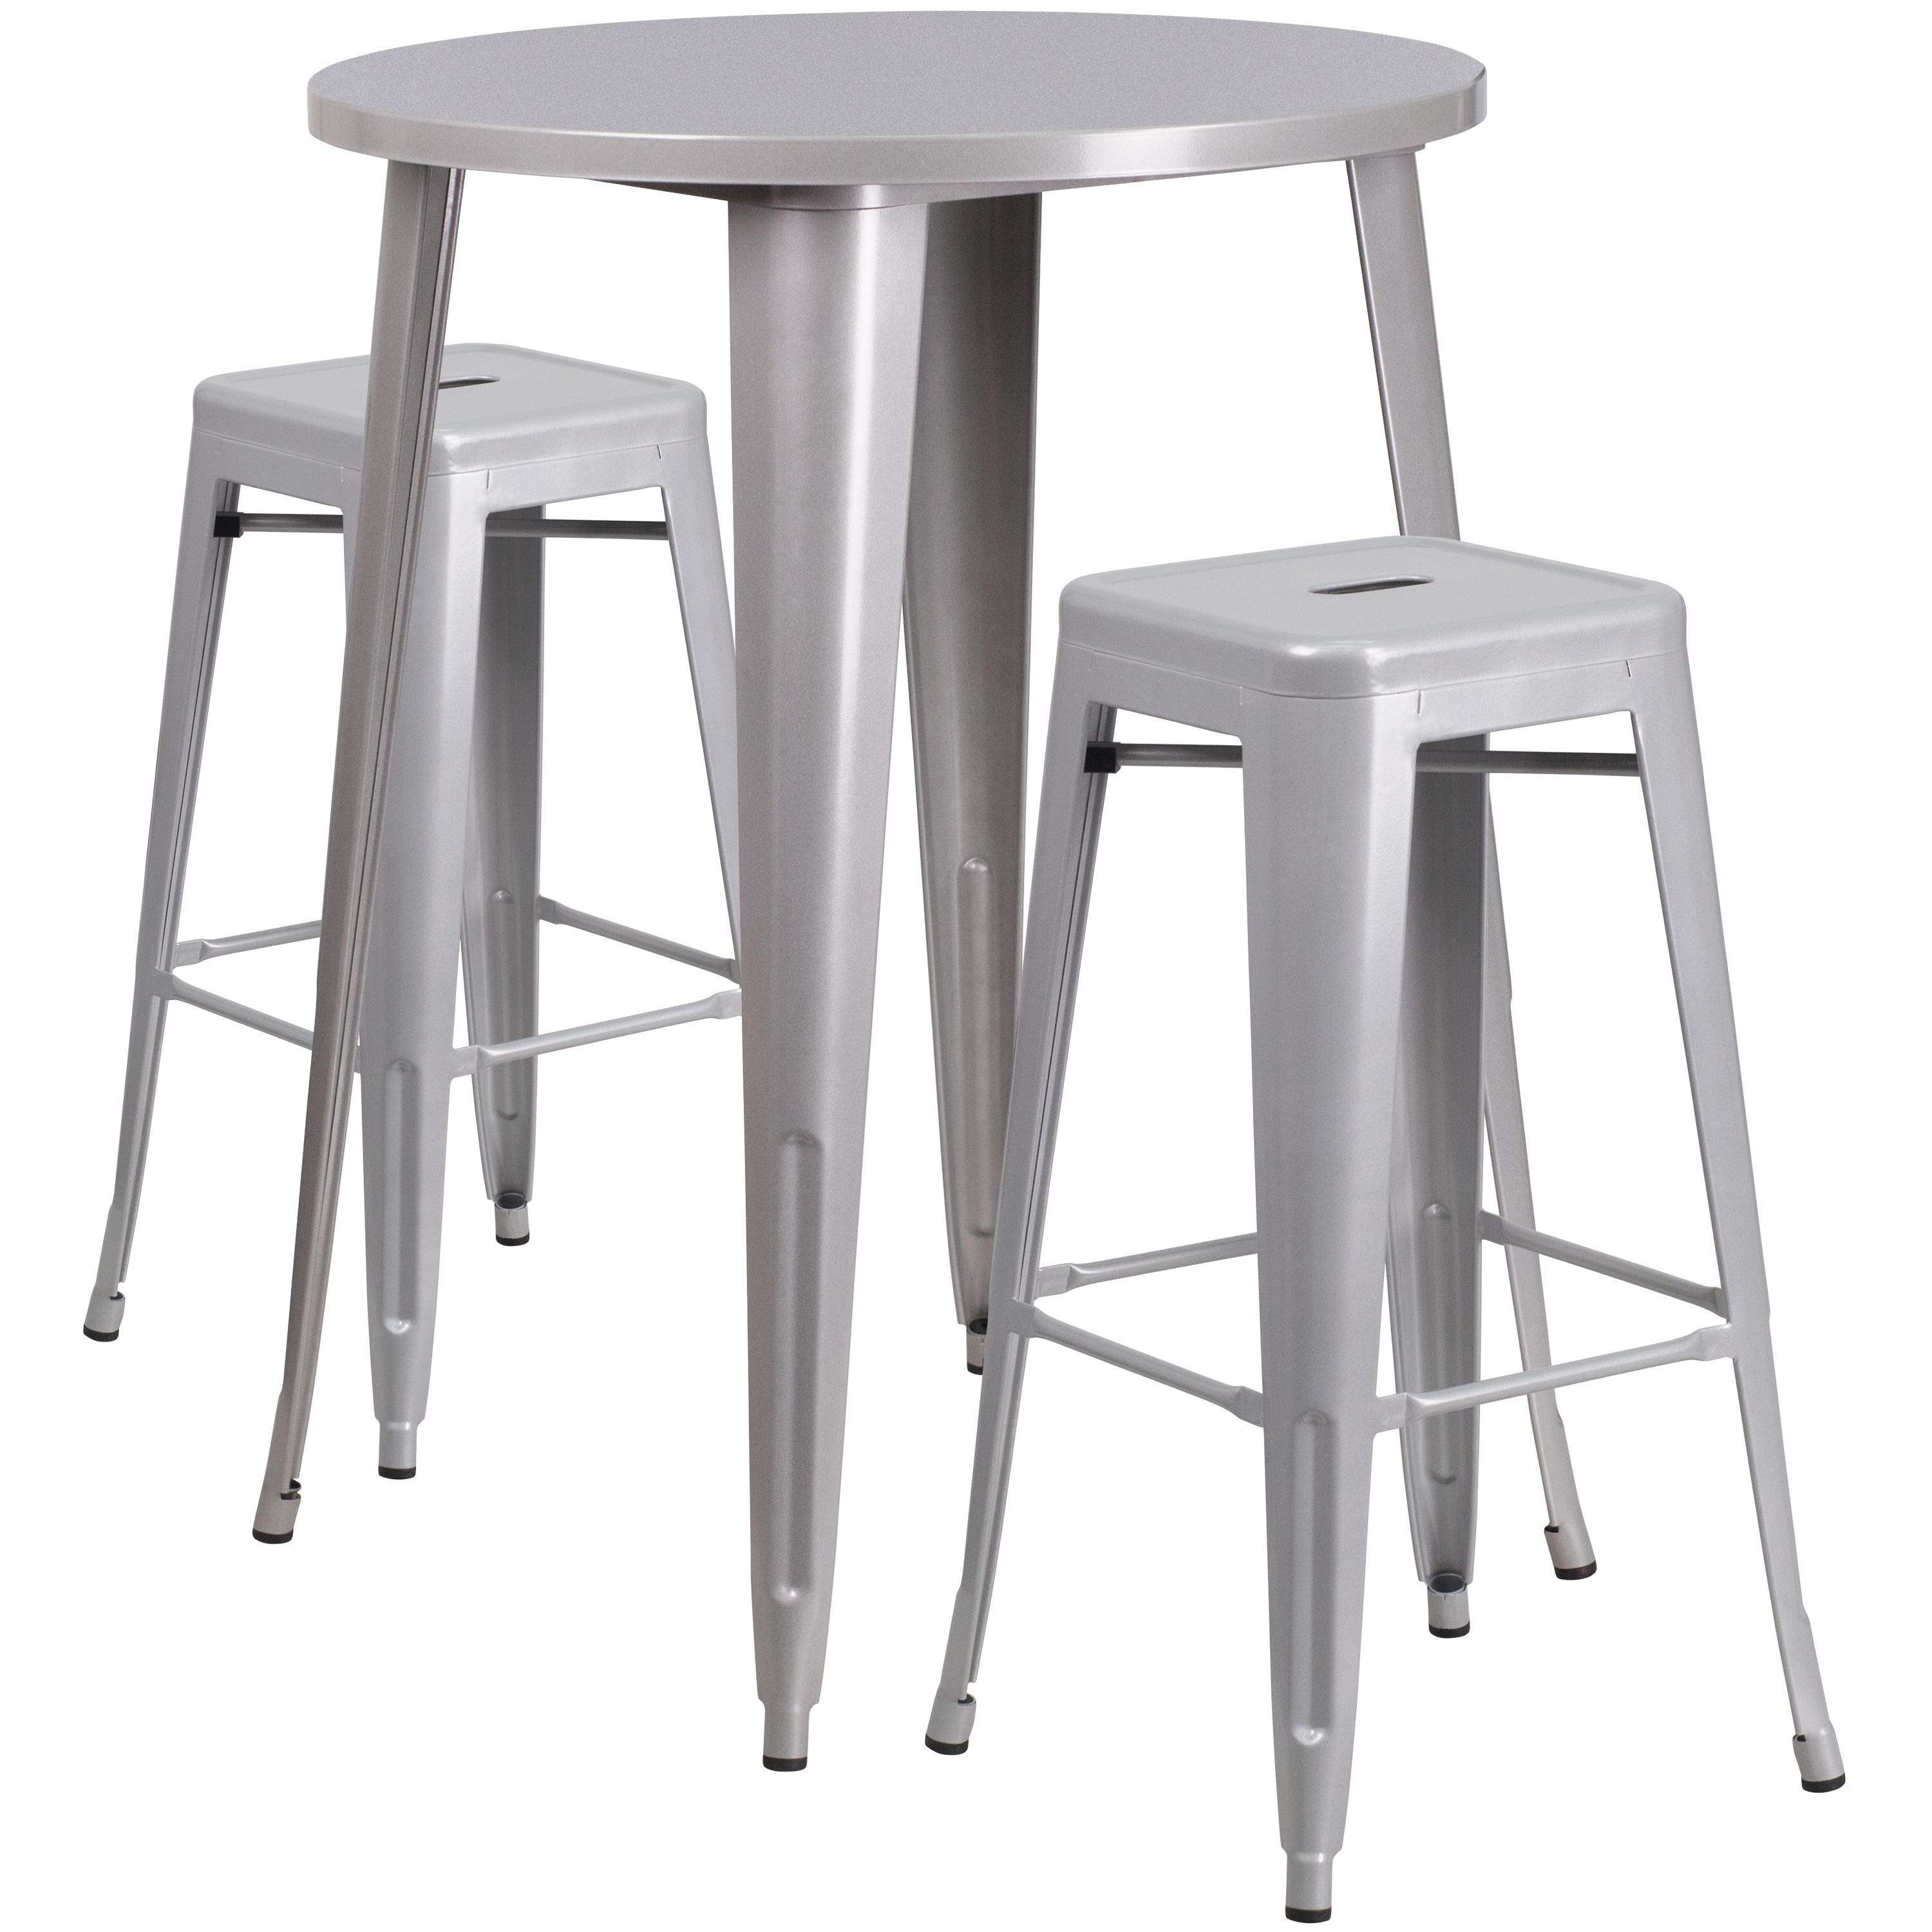 Lancaster Home 30-inch Round Metal Indoor-Outdoor Bar Table Set with 2 Square Seat Backless Barstools